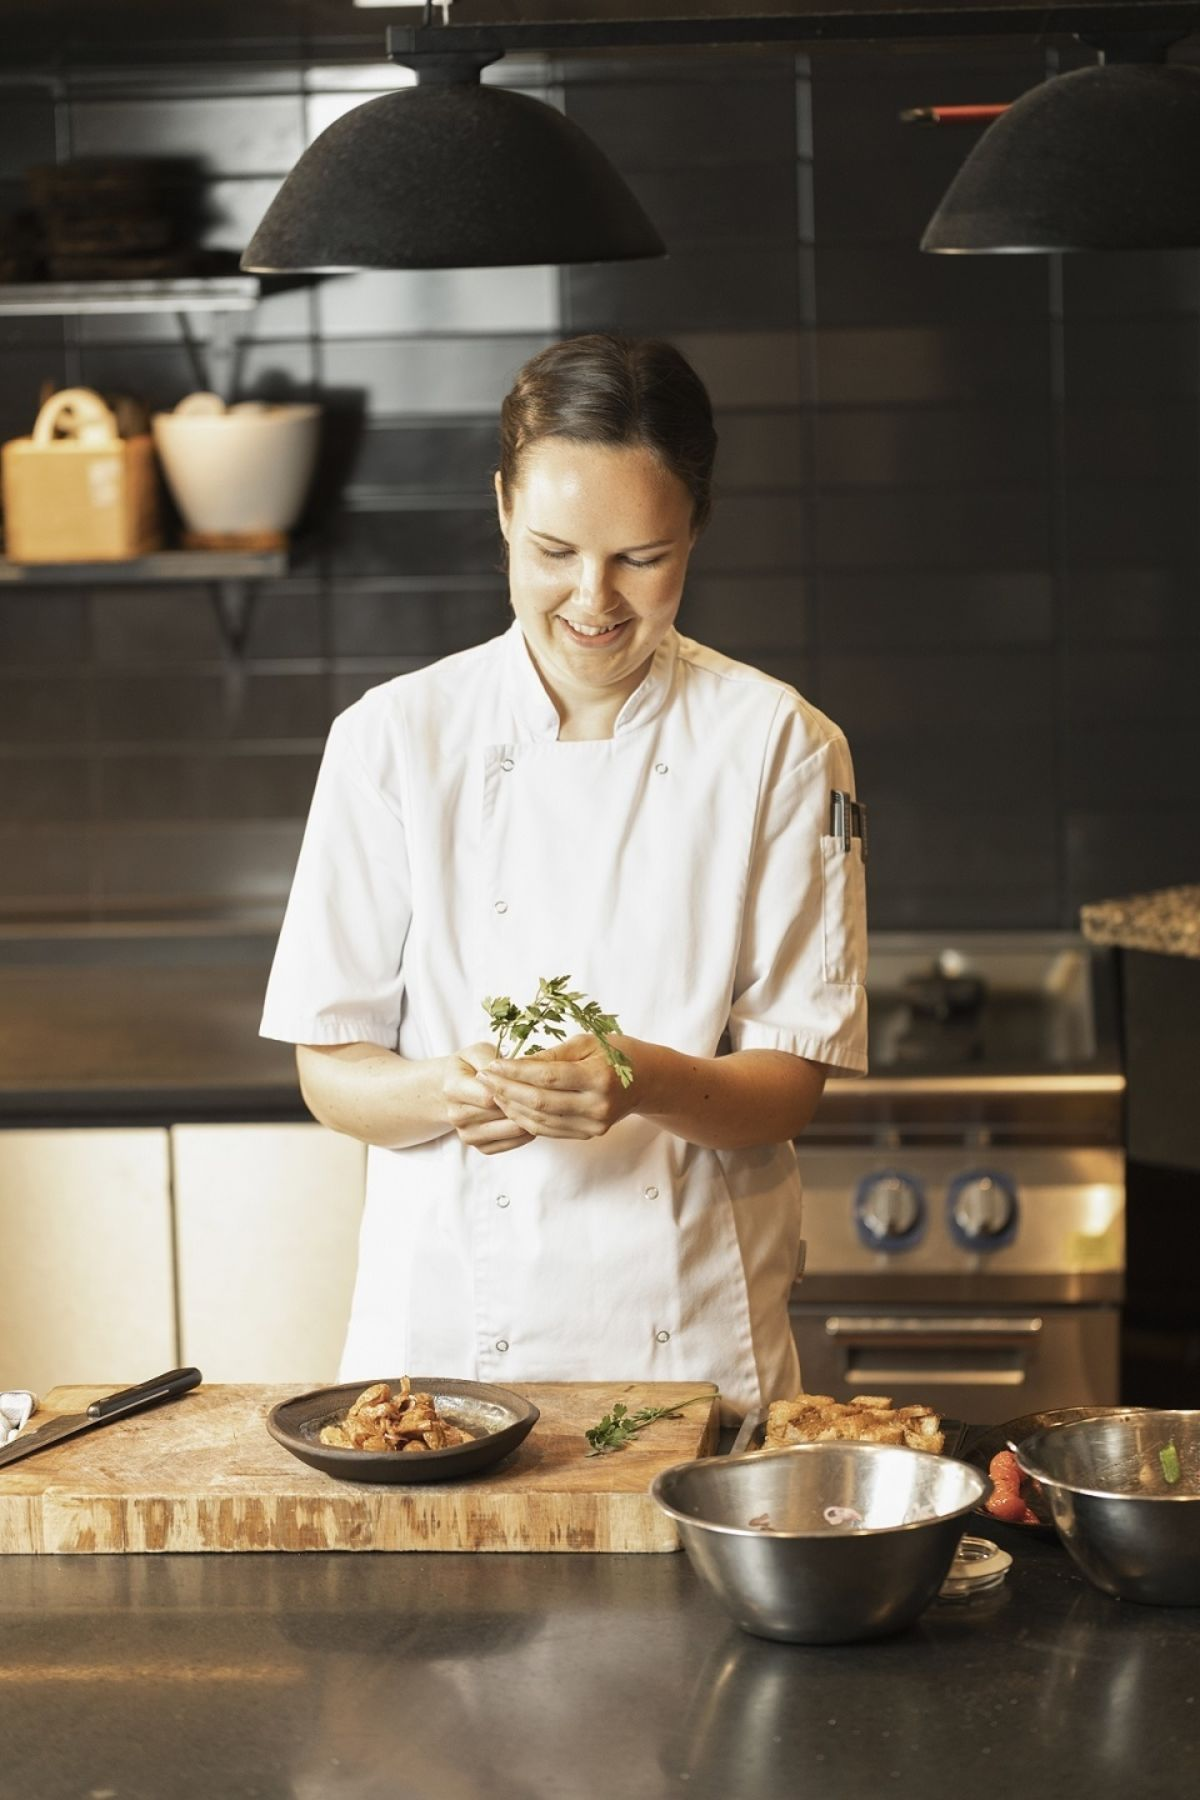 Veera Valtonen is excited about this year's new restaurants at Flow Festival.